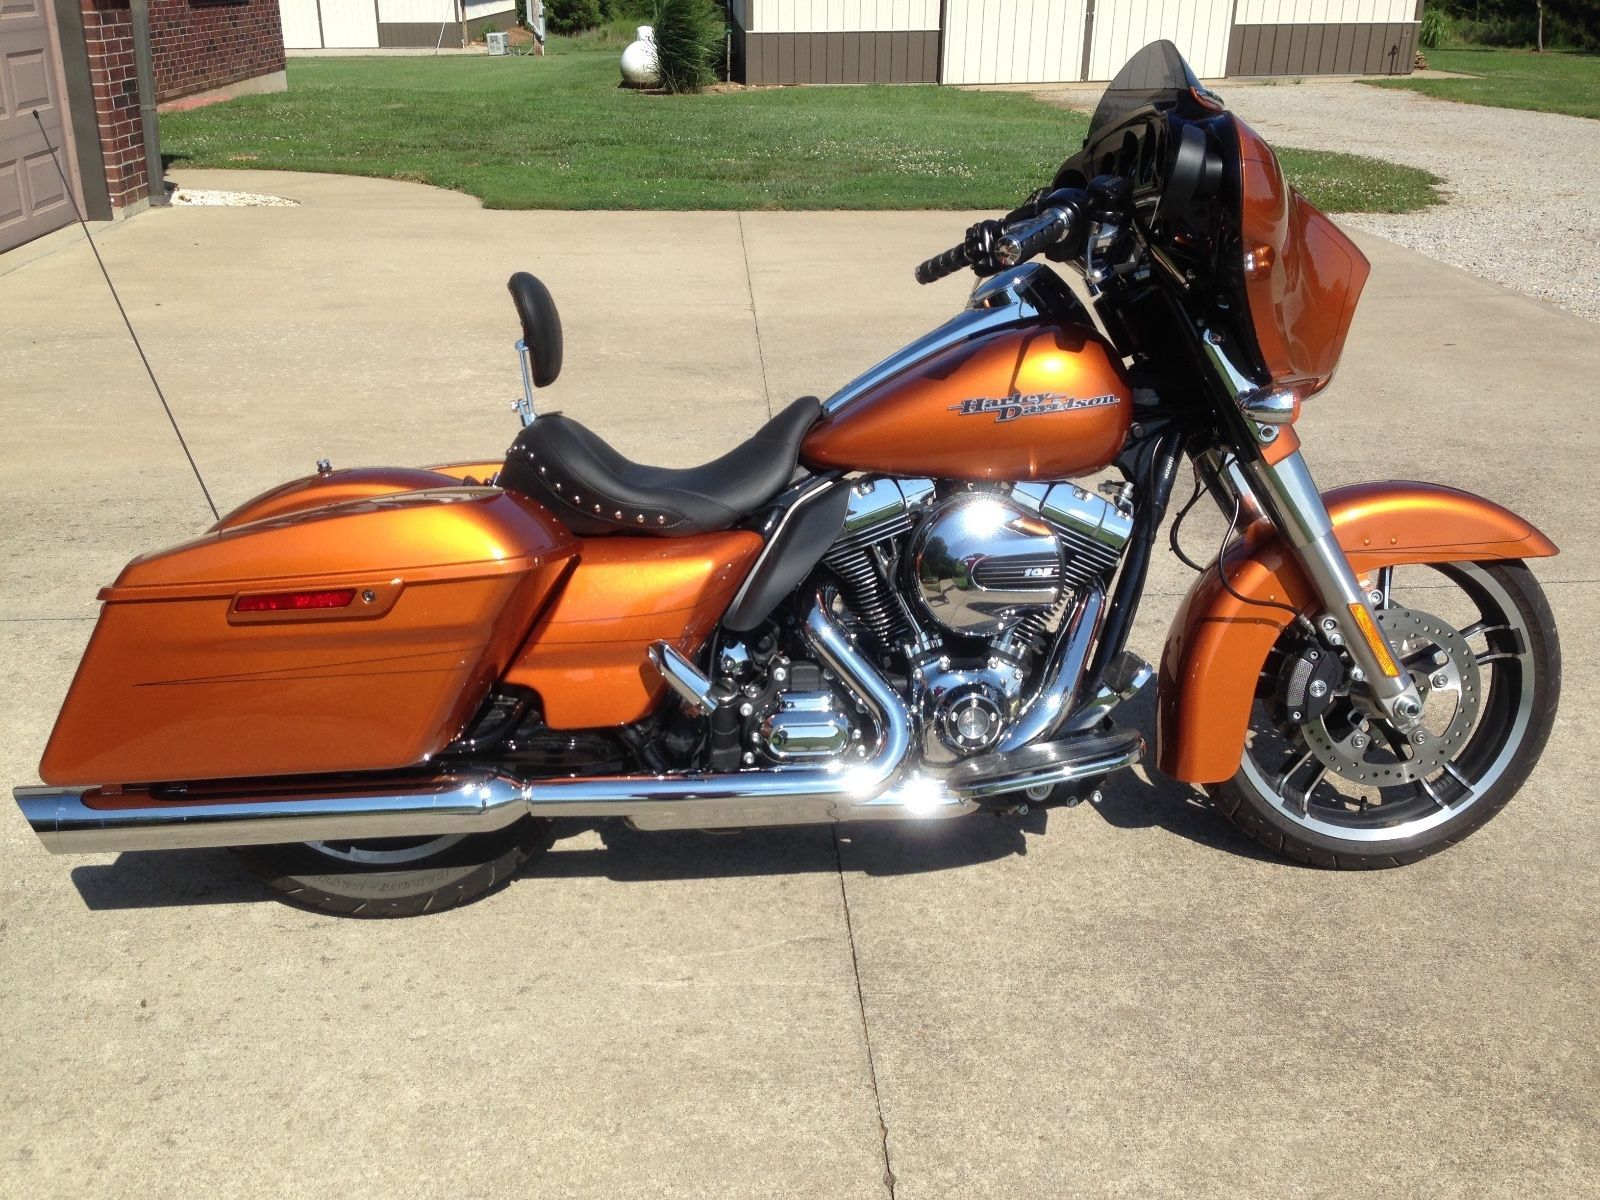 #harley 2015 Harley-Davidson Touring 2015 Amber Whiskey Street Glide  Special please retweet